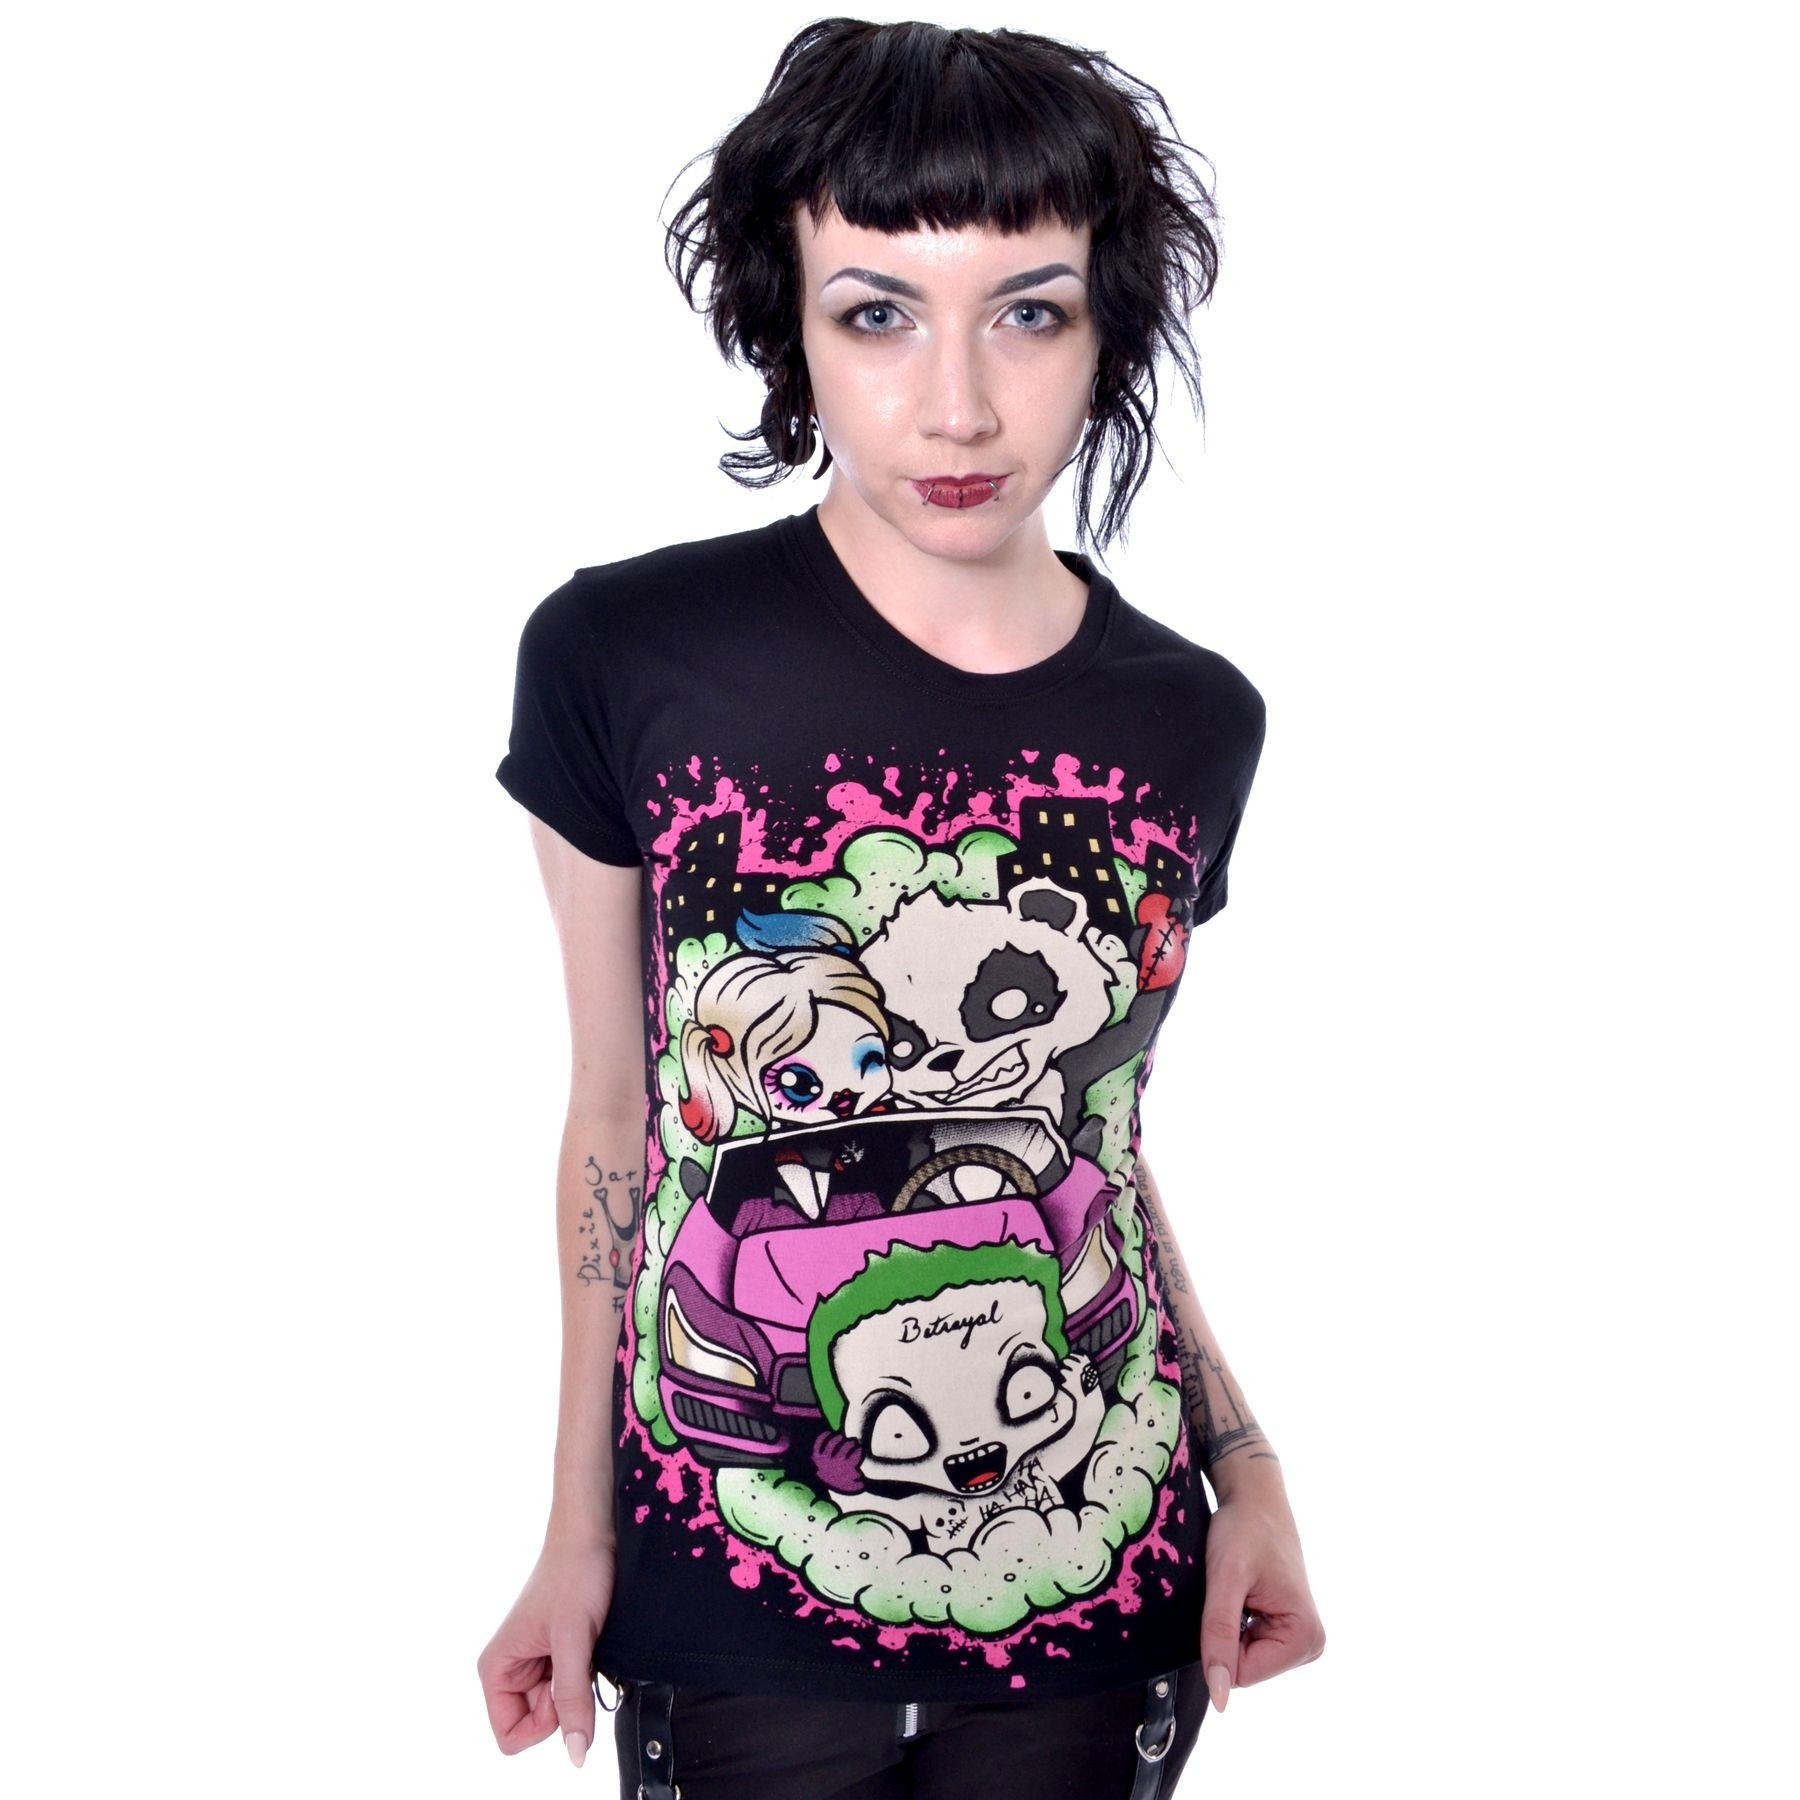 CUPCAKE CULT - BETRAYED T LADIES BLACK SIZE XL